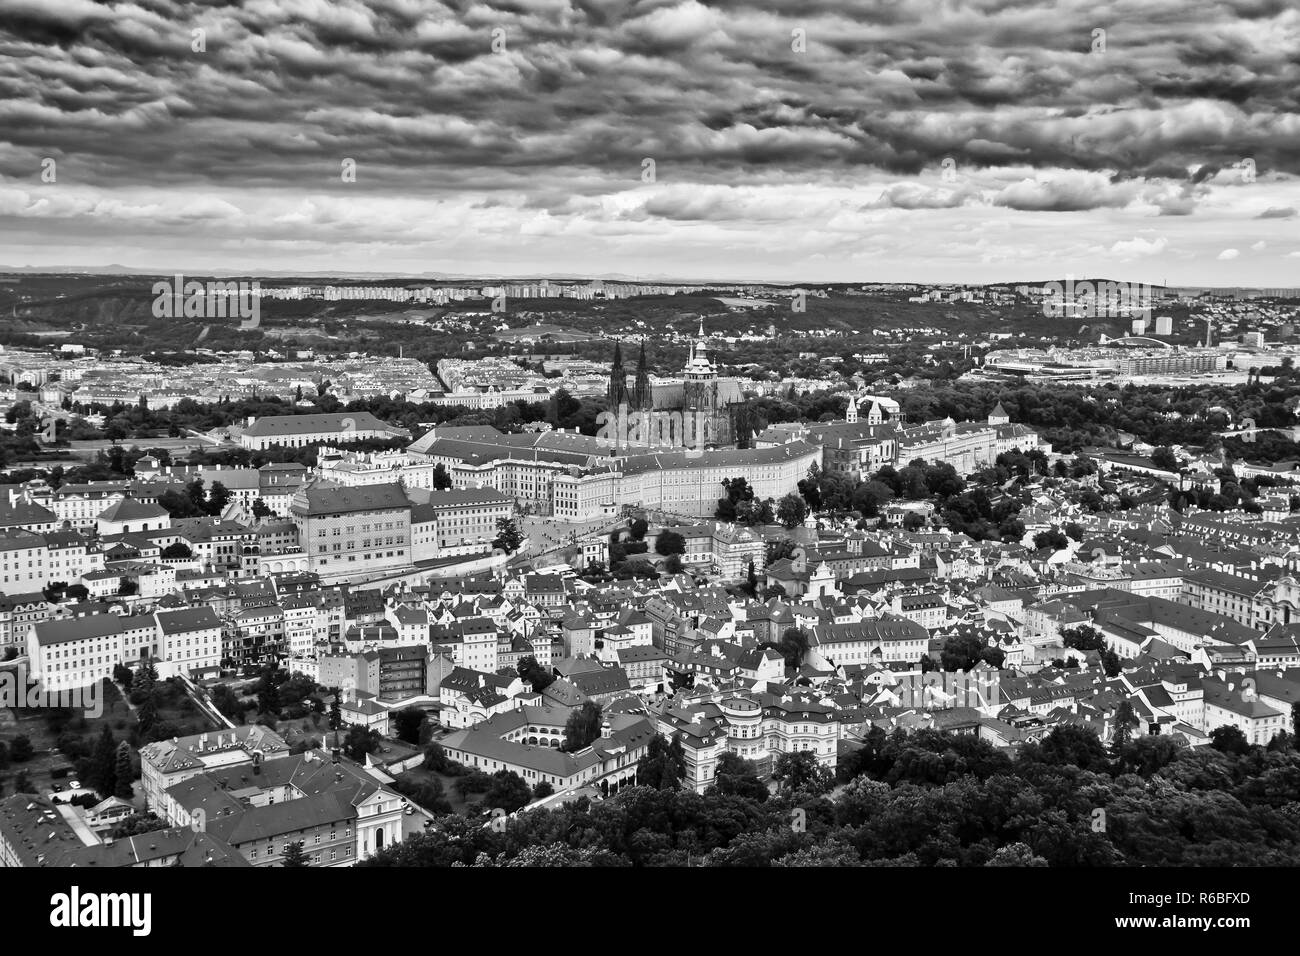 Prague is the capital and largest city in the Czech Republic, the 14th largest city in the European Union and the historical capital of Bohemia. - Stock Image